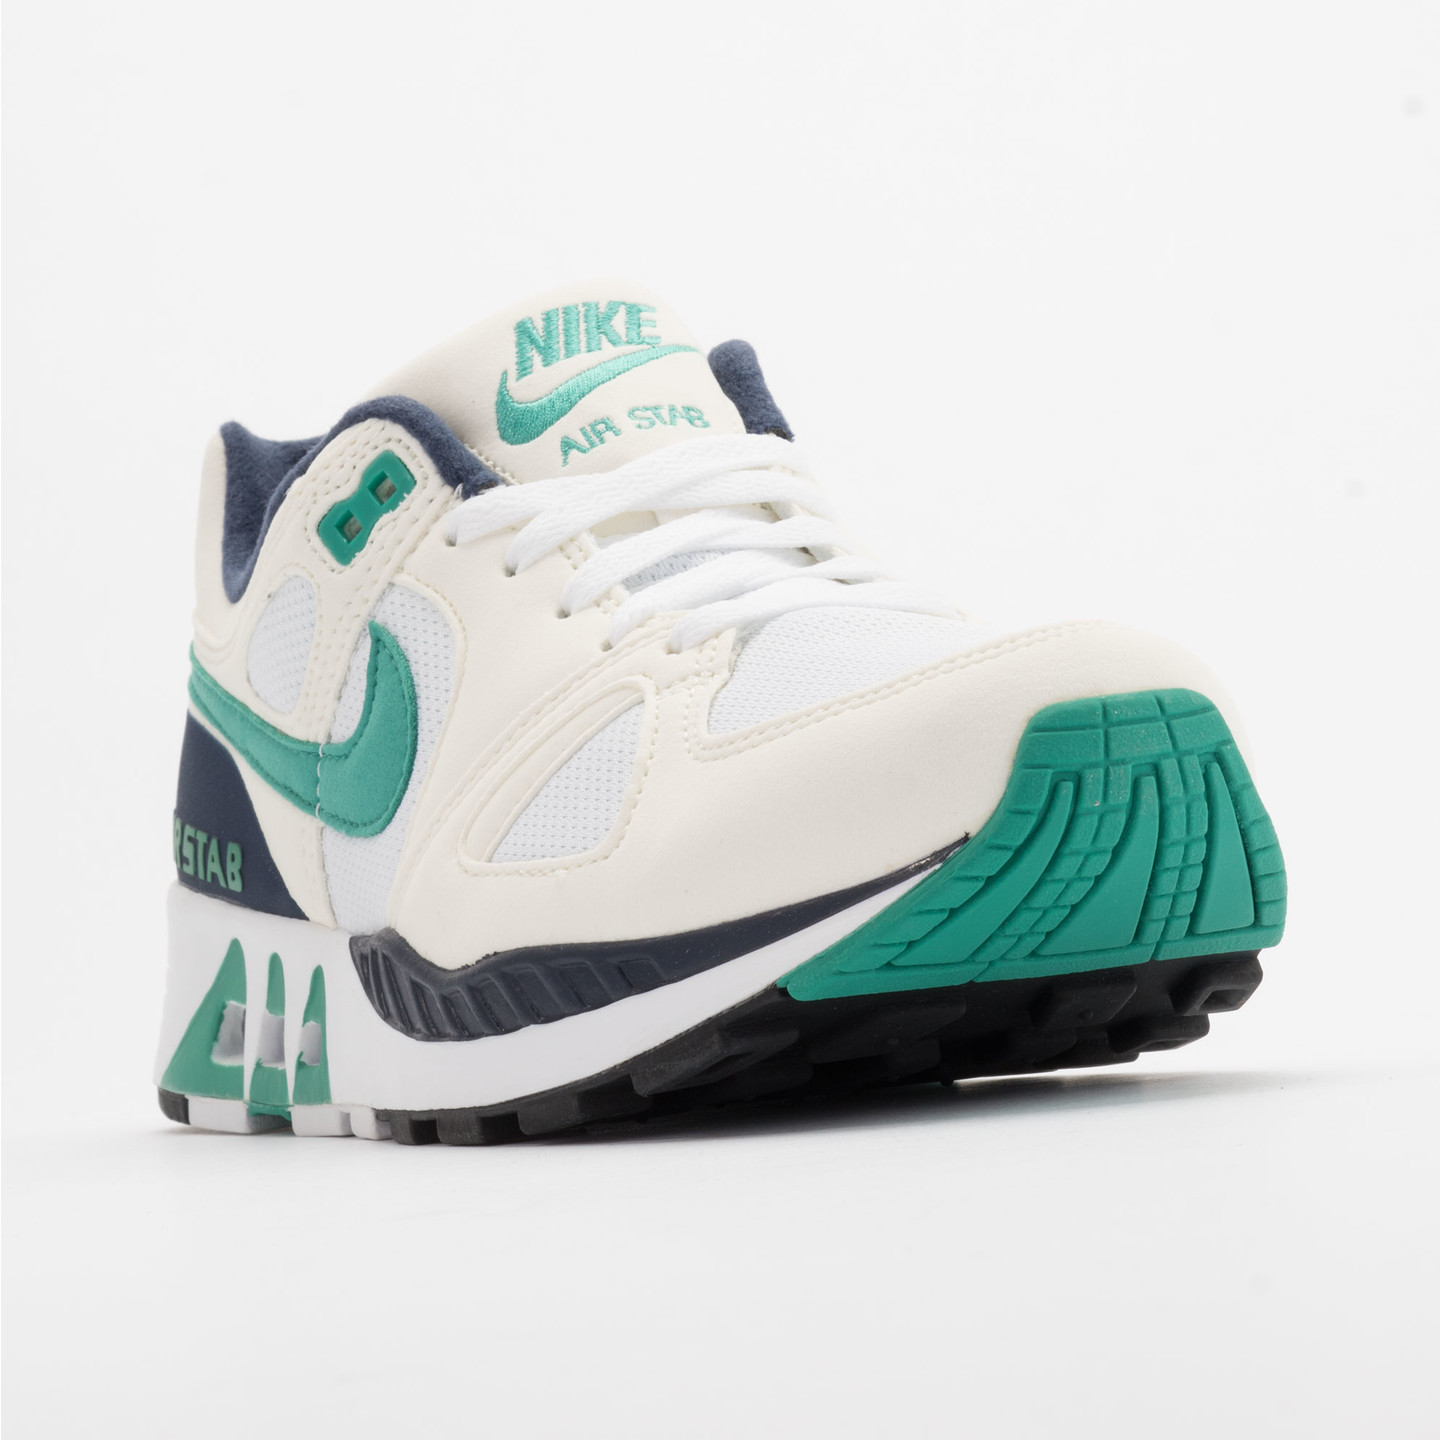 Nike Air Stab White/Emerald Green-Sl-Mid Nvy 312451-100-44.5